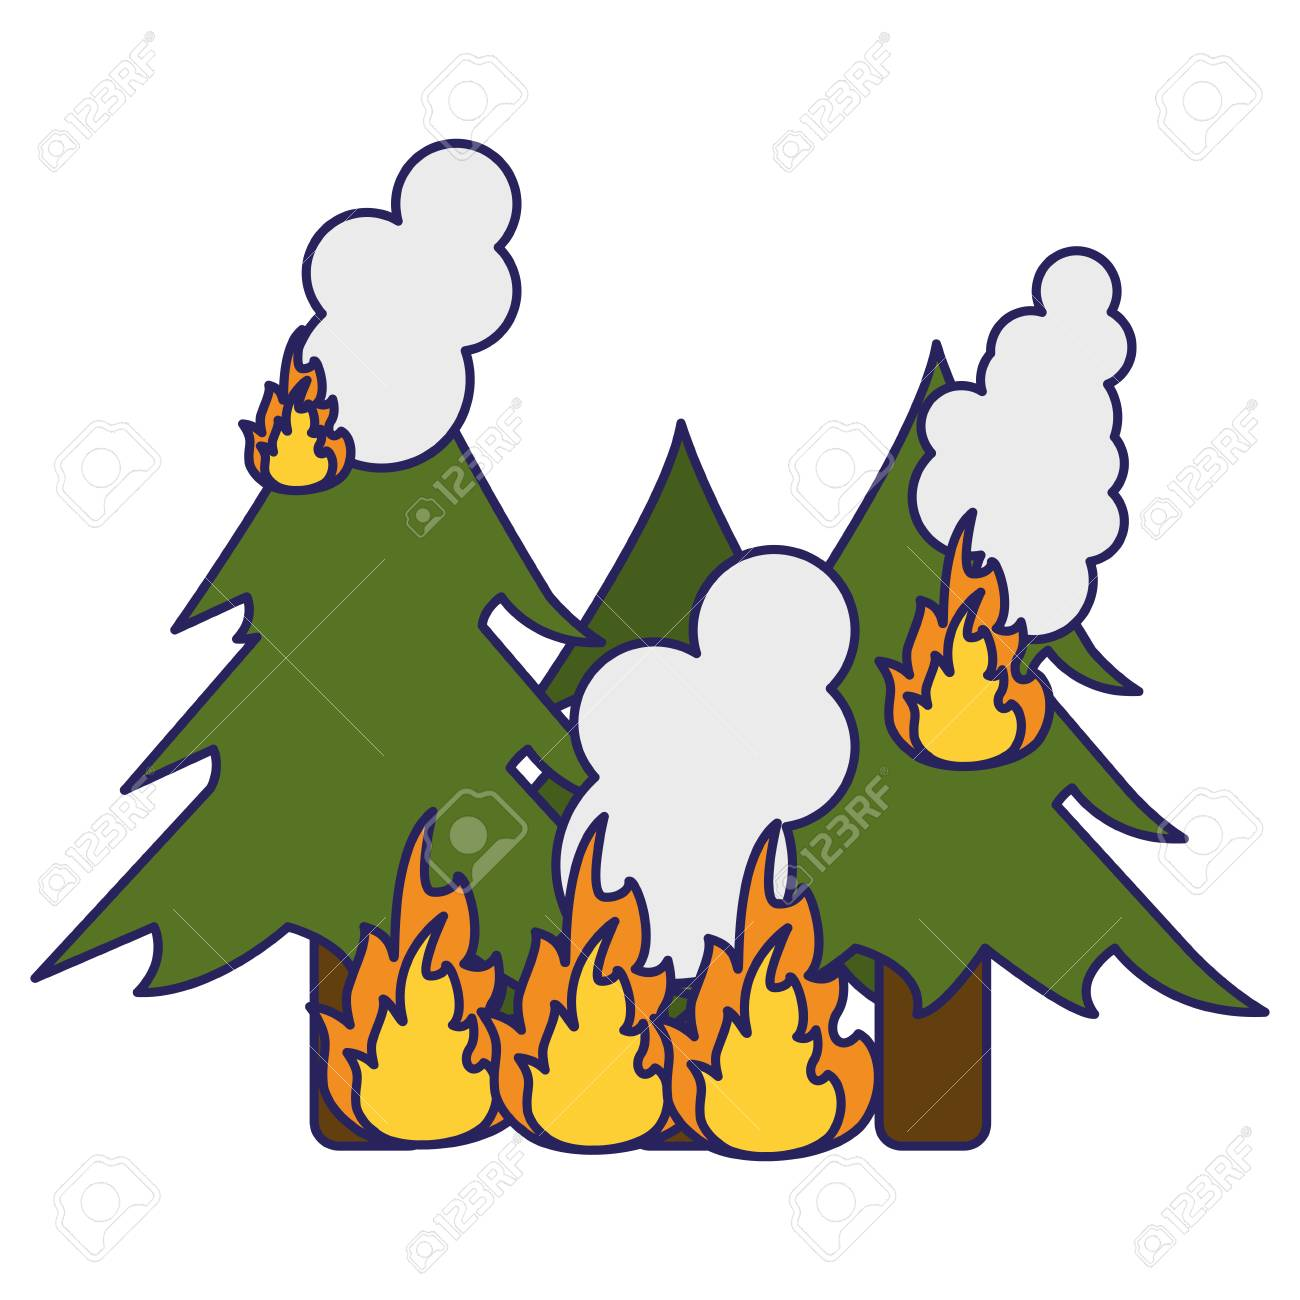 Trees Forest In Fire Cartoon Vector Illustration Graphic Design Royalty Free Cliparts Vectors And Stock Illustration Image 125094182 Search, discover and share your favorite tree on fire gifs. trees forest in fire cartoon vector illustration graphic design